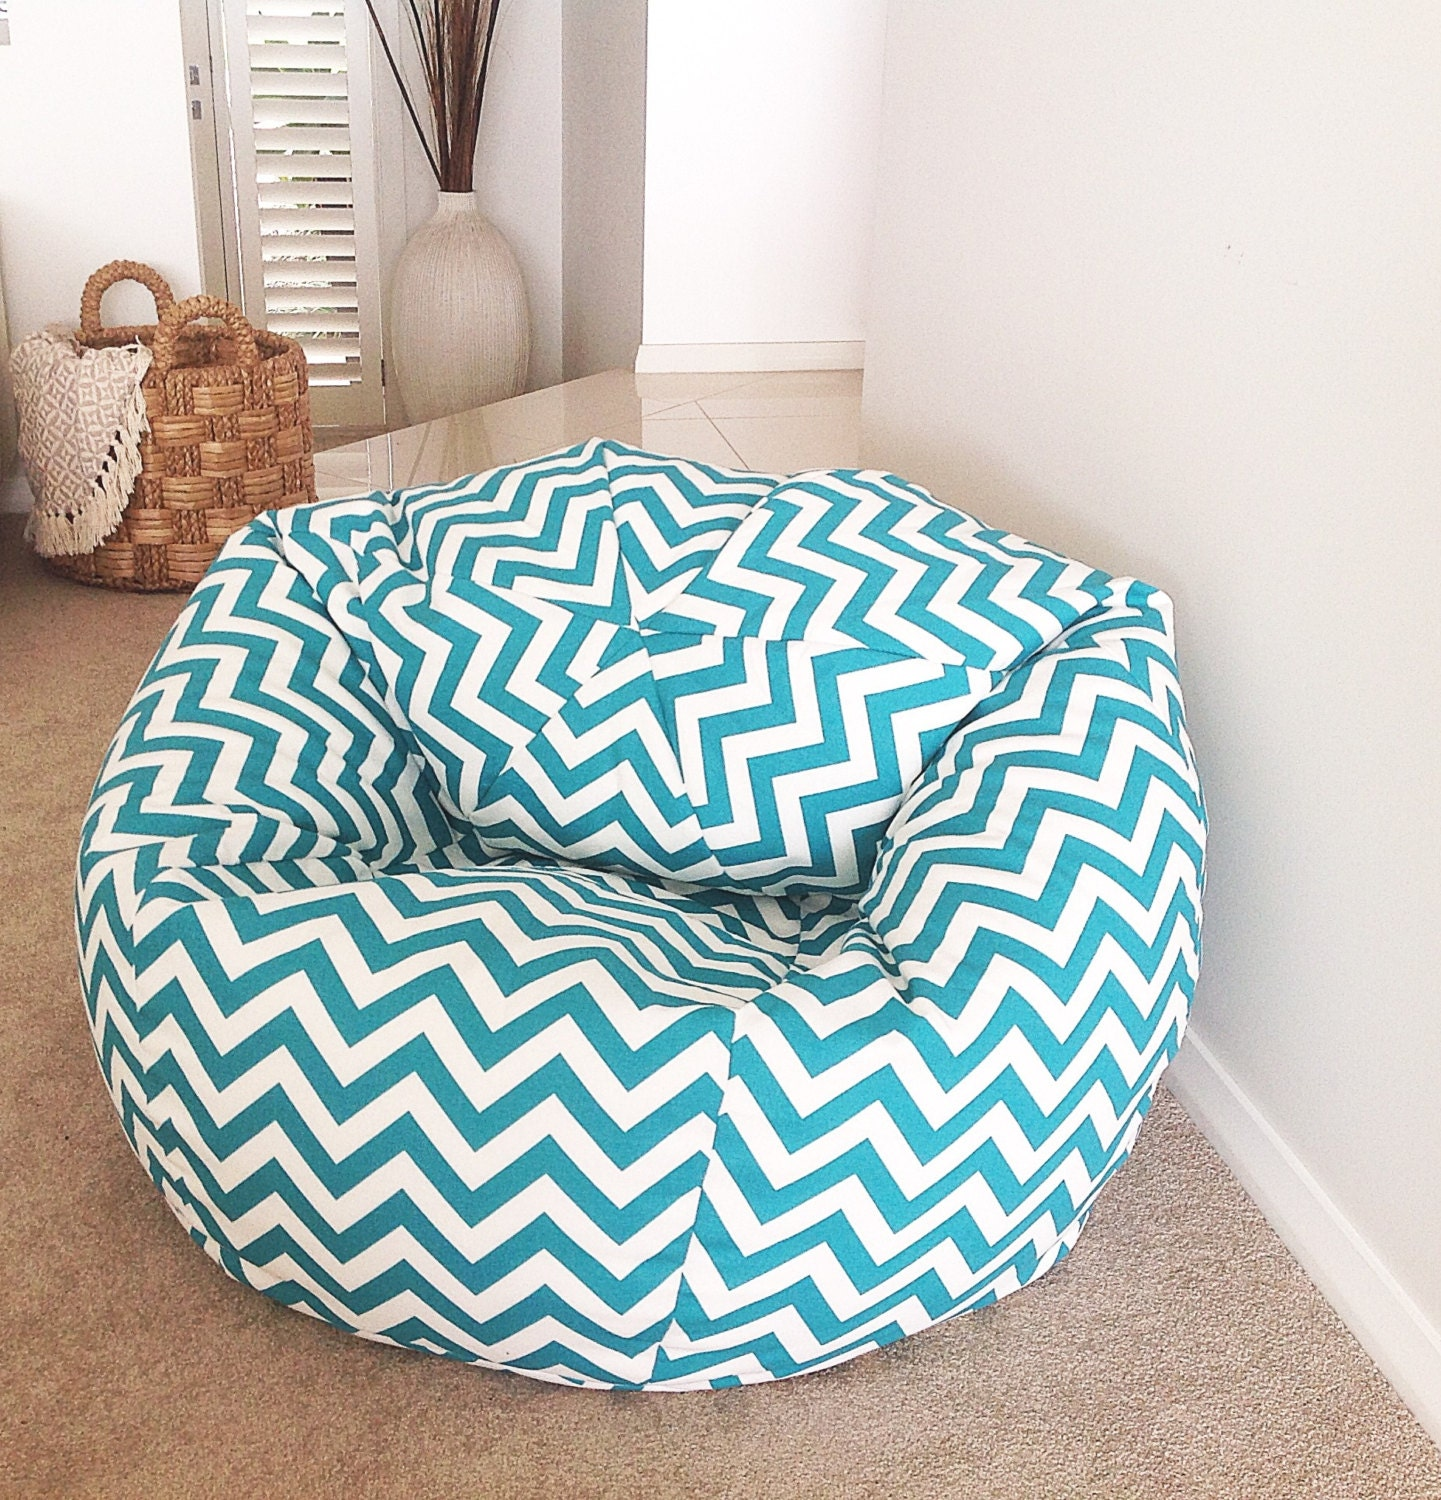 Chevron Bean Bag Cover Adults Kids Turquoise Zig